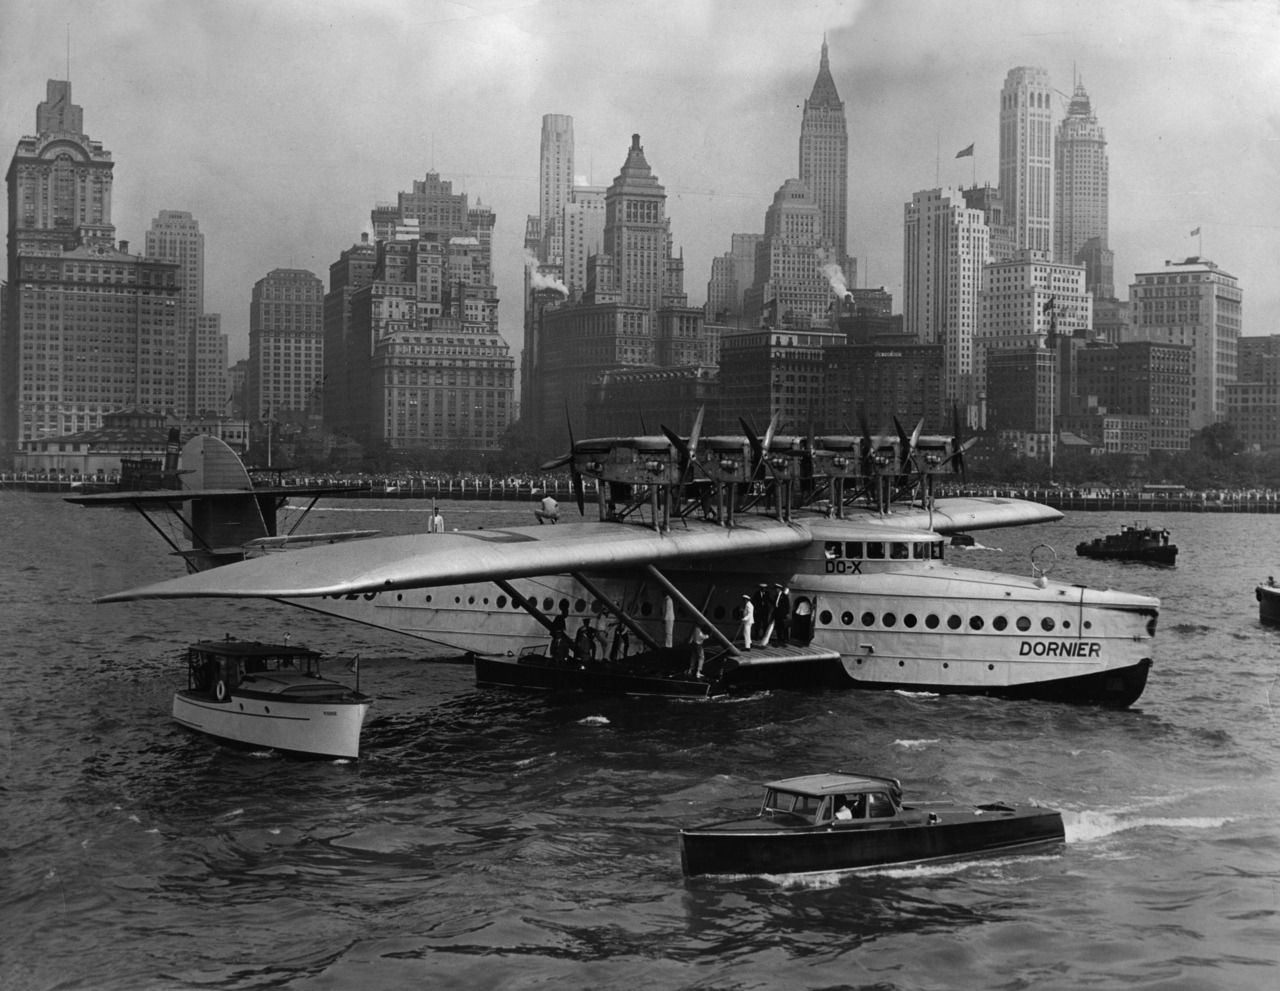 The Dornier Do X seaplane with the registration number D-1929 undertook a demonstration flight from Amsterdam to New York in 1930/31. Passengers board the airplane from a boat which has docked on the starboard small wing.